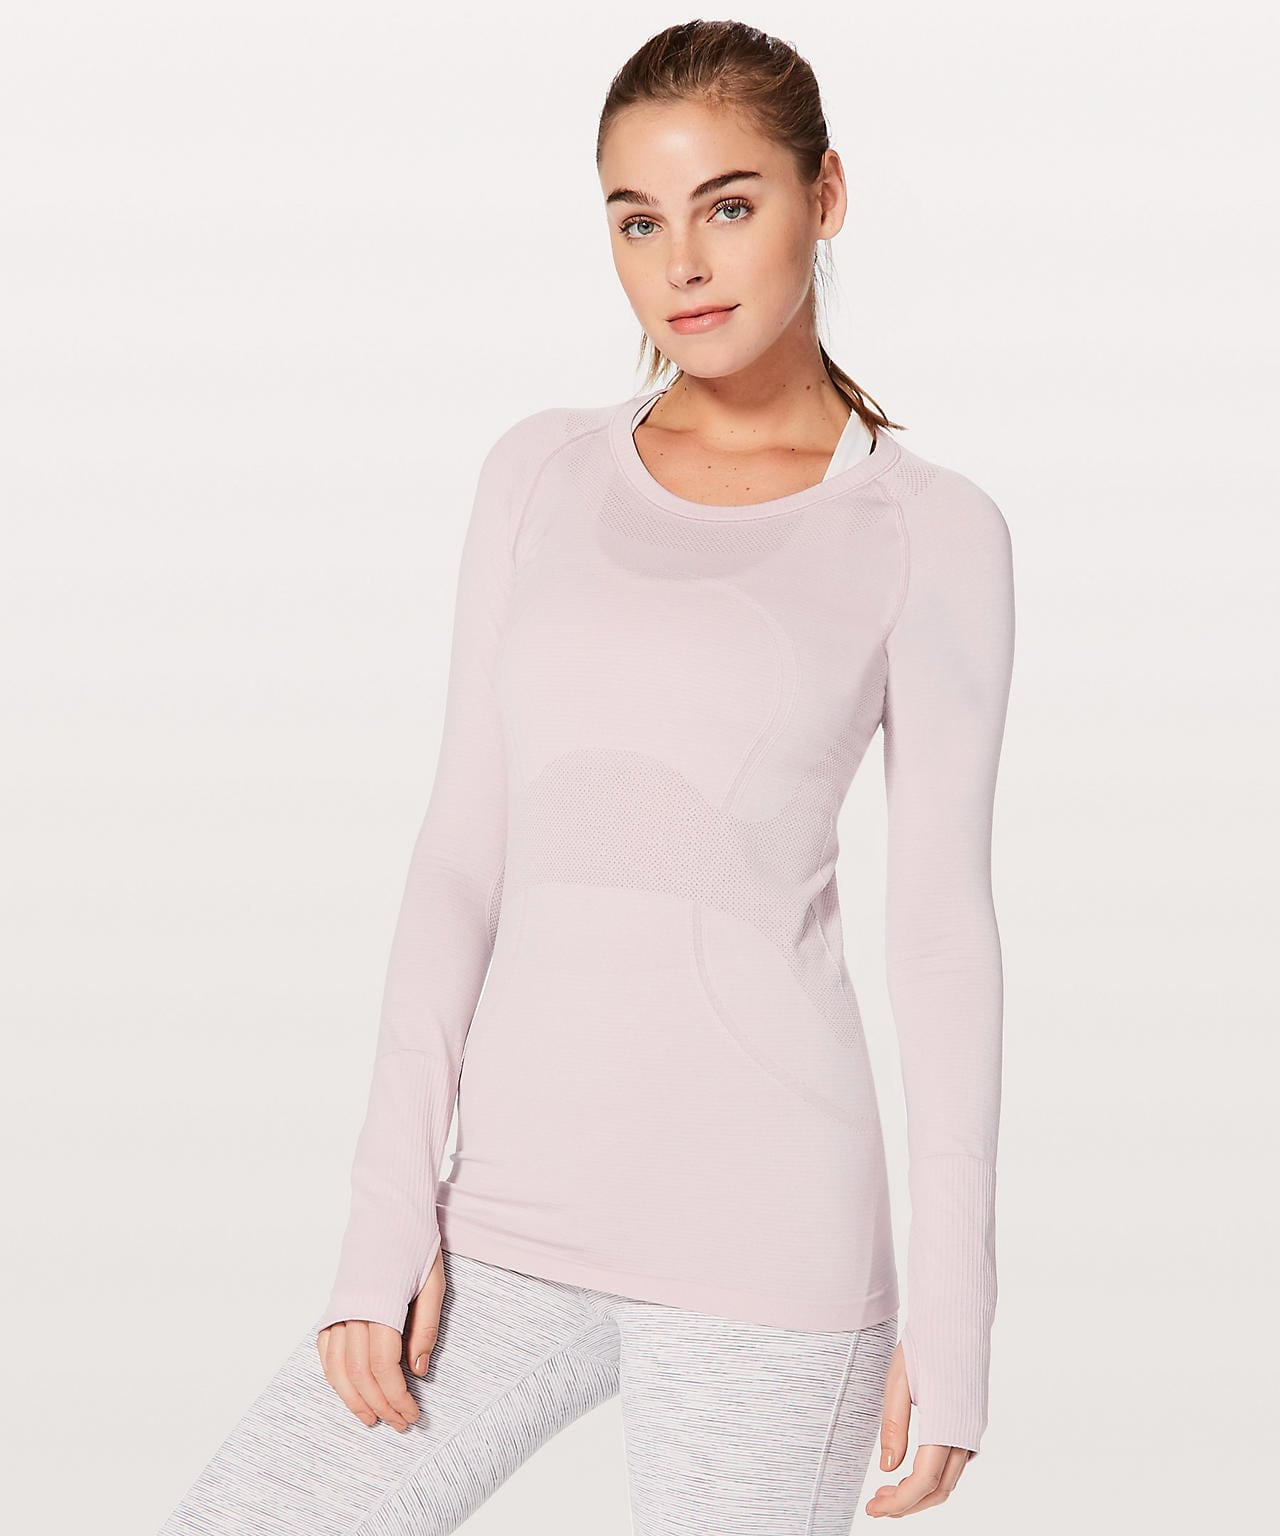 Porcelain Pink Swiftly Tech LS